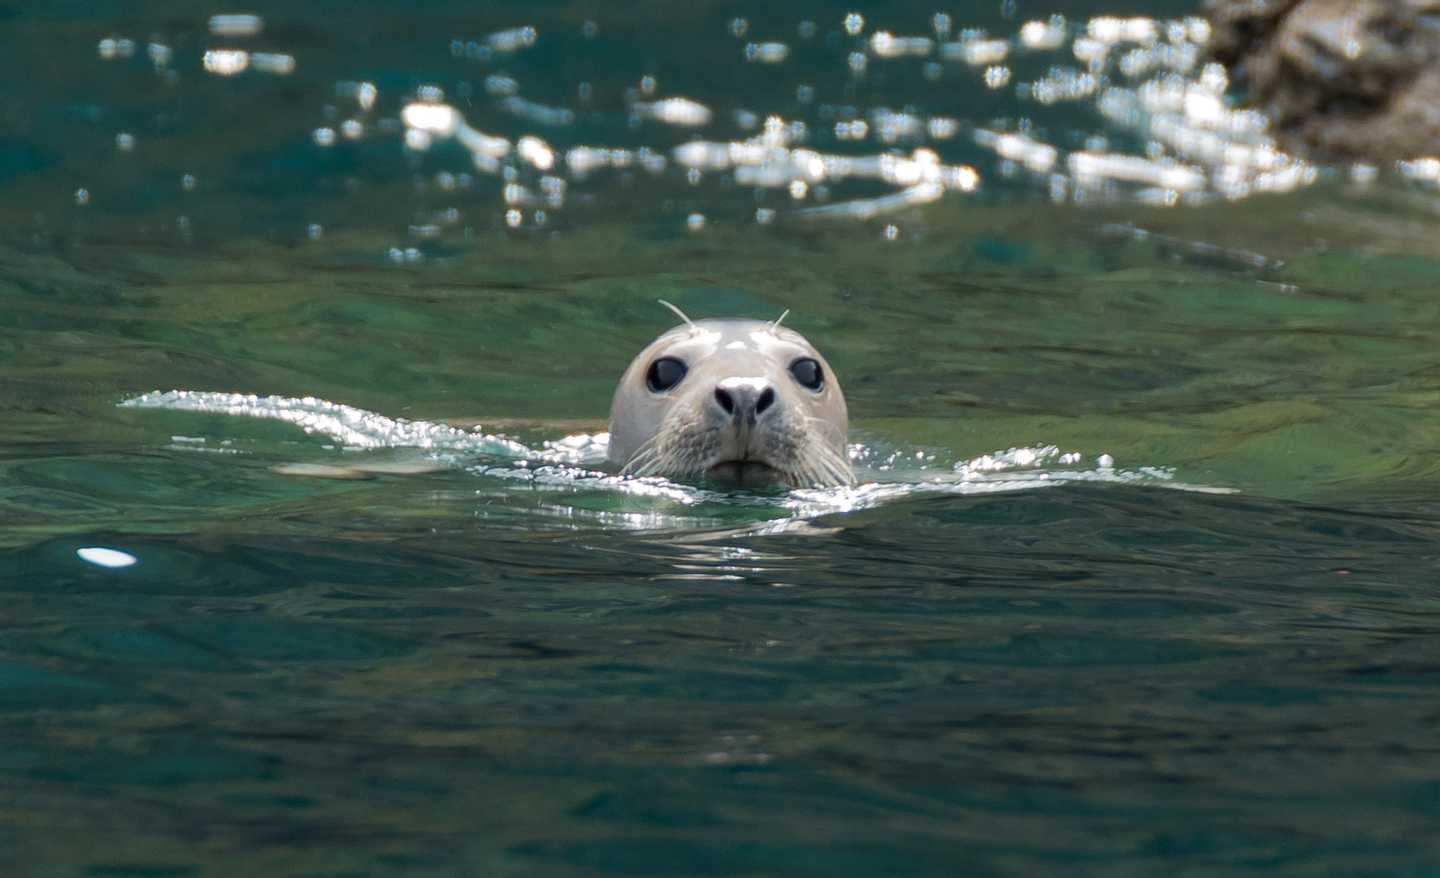 Seal swimming in the water